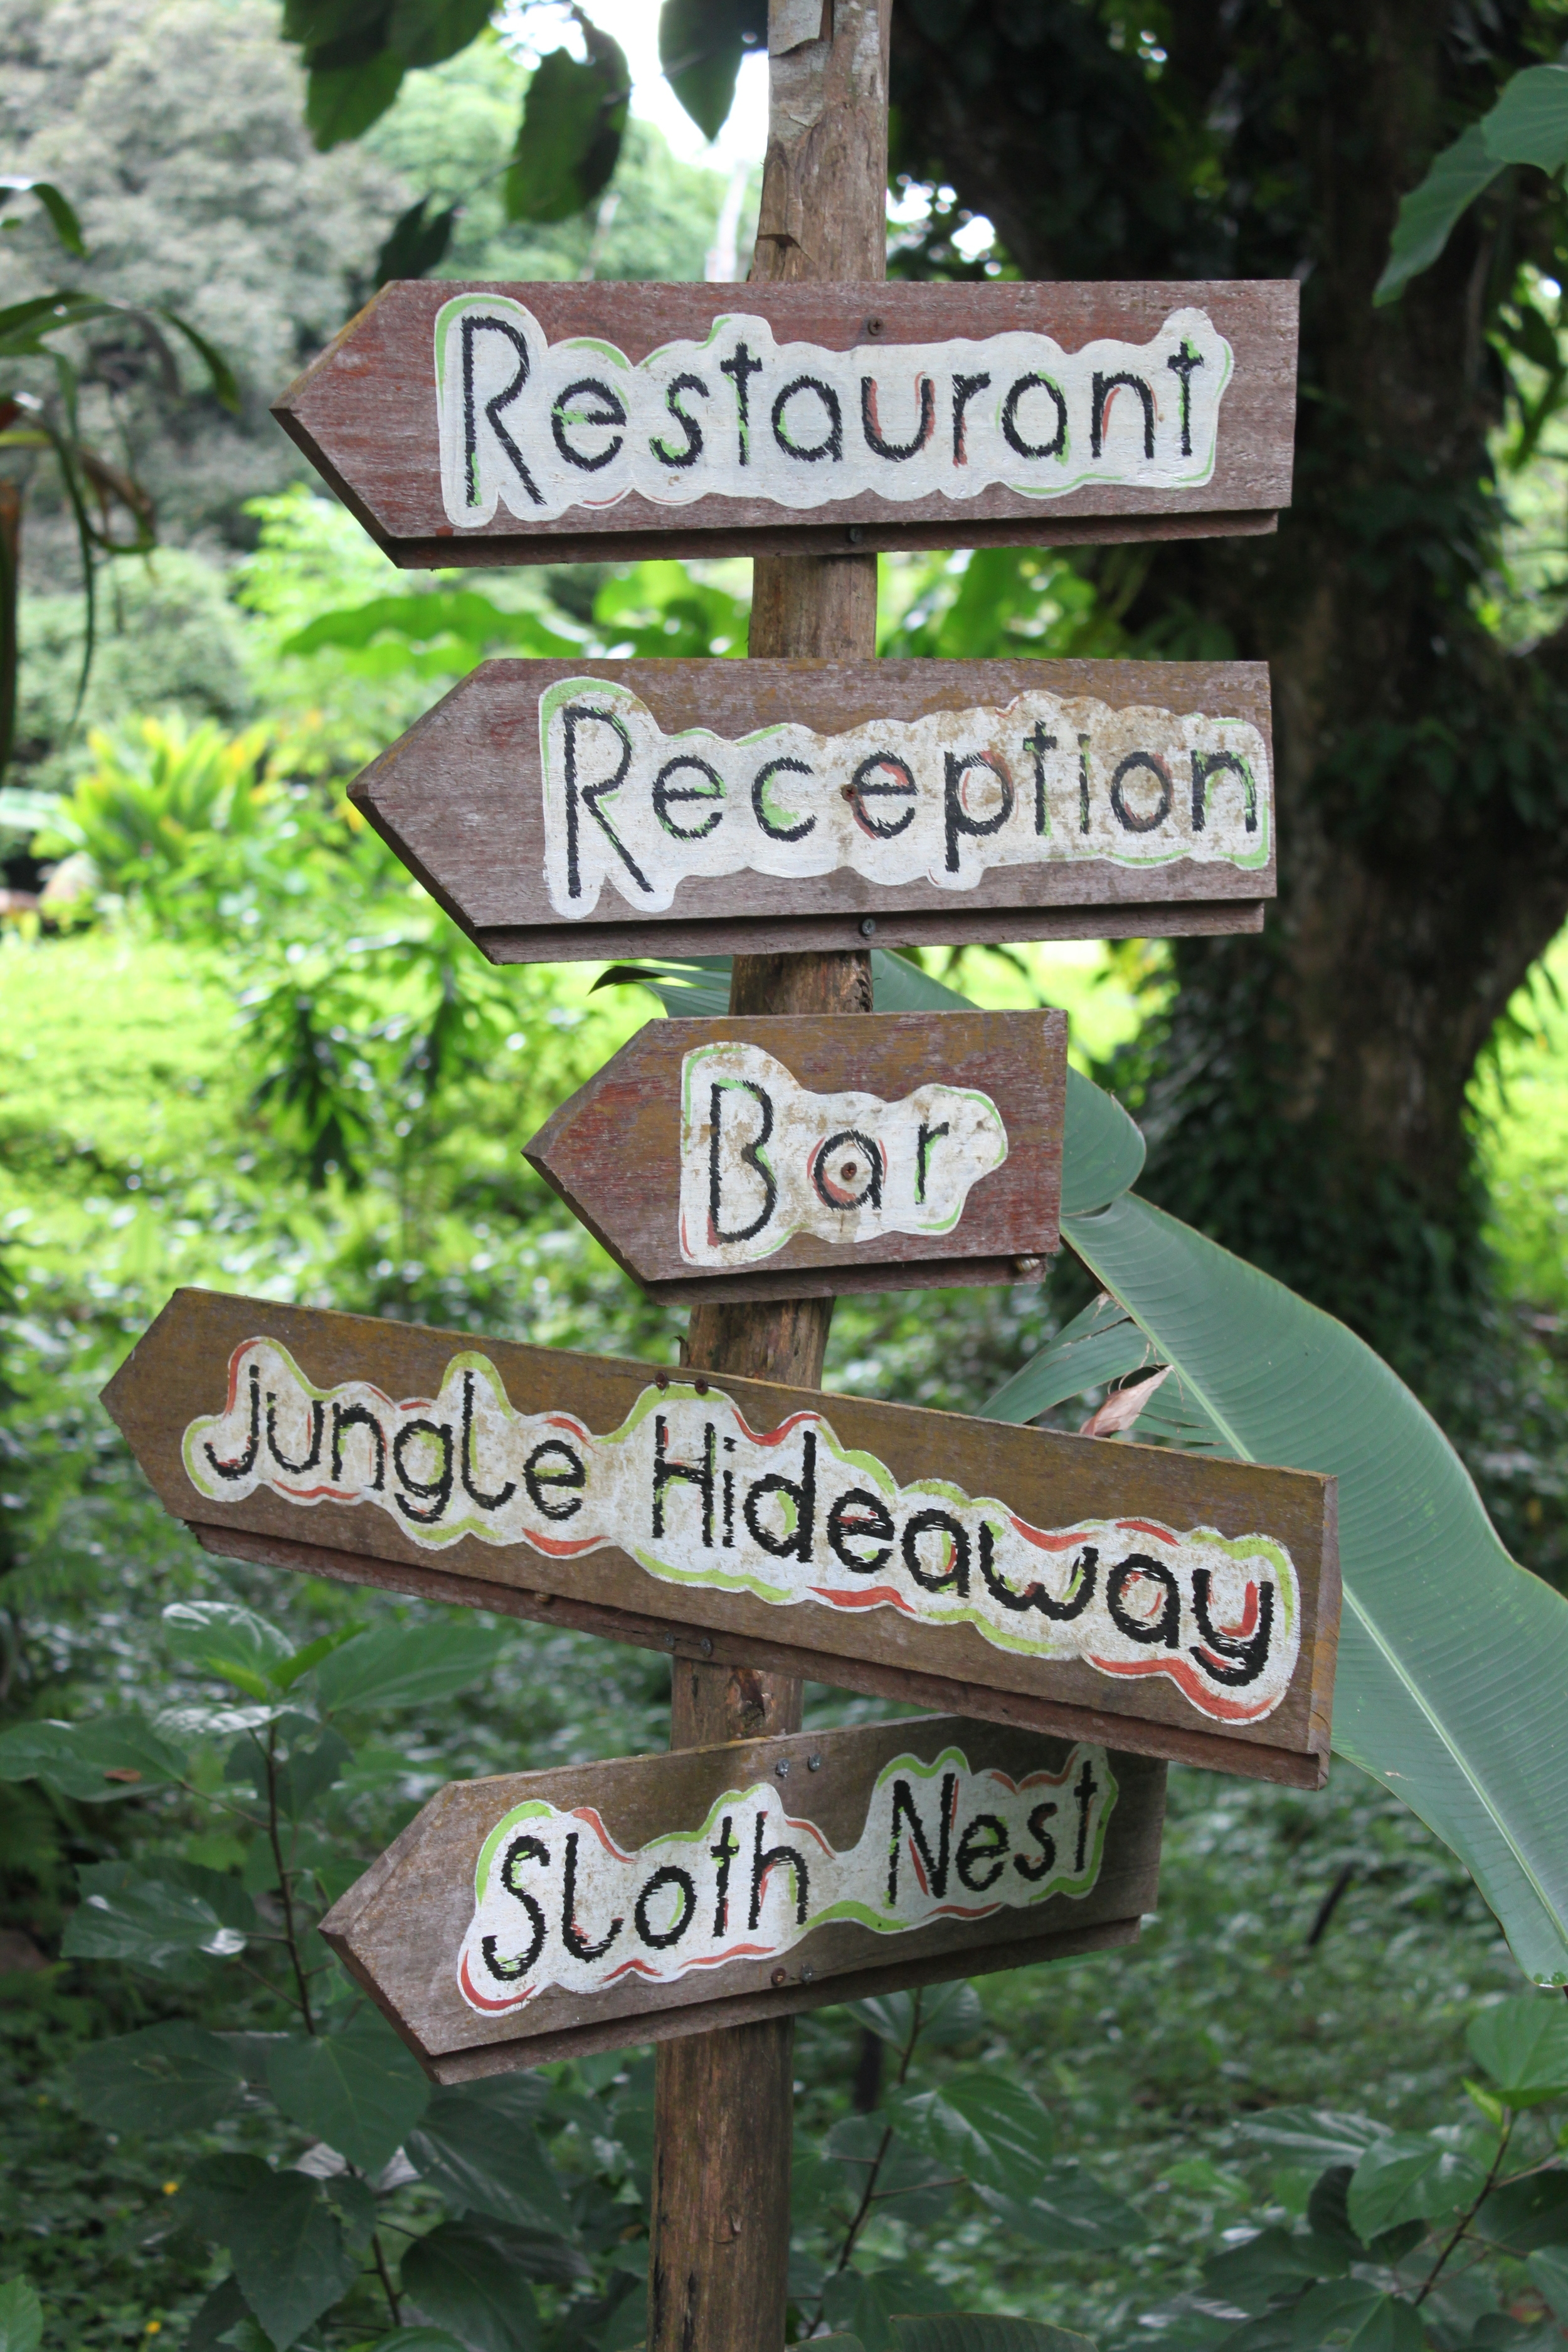 A hostel with a sloth nest?! Bambuda Lodge - Isla Solarte, Bocas Del Toro, Panama